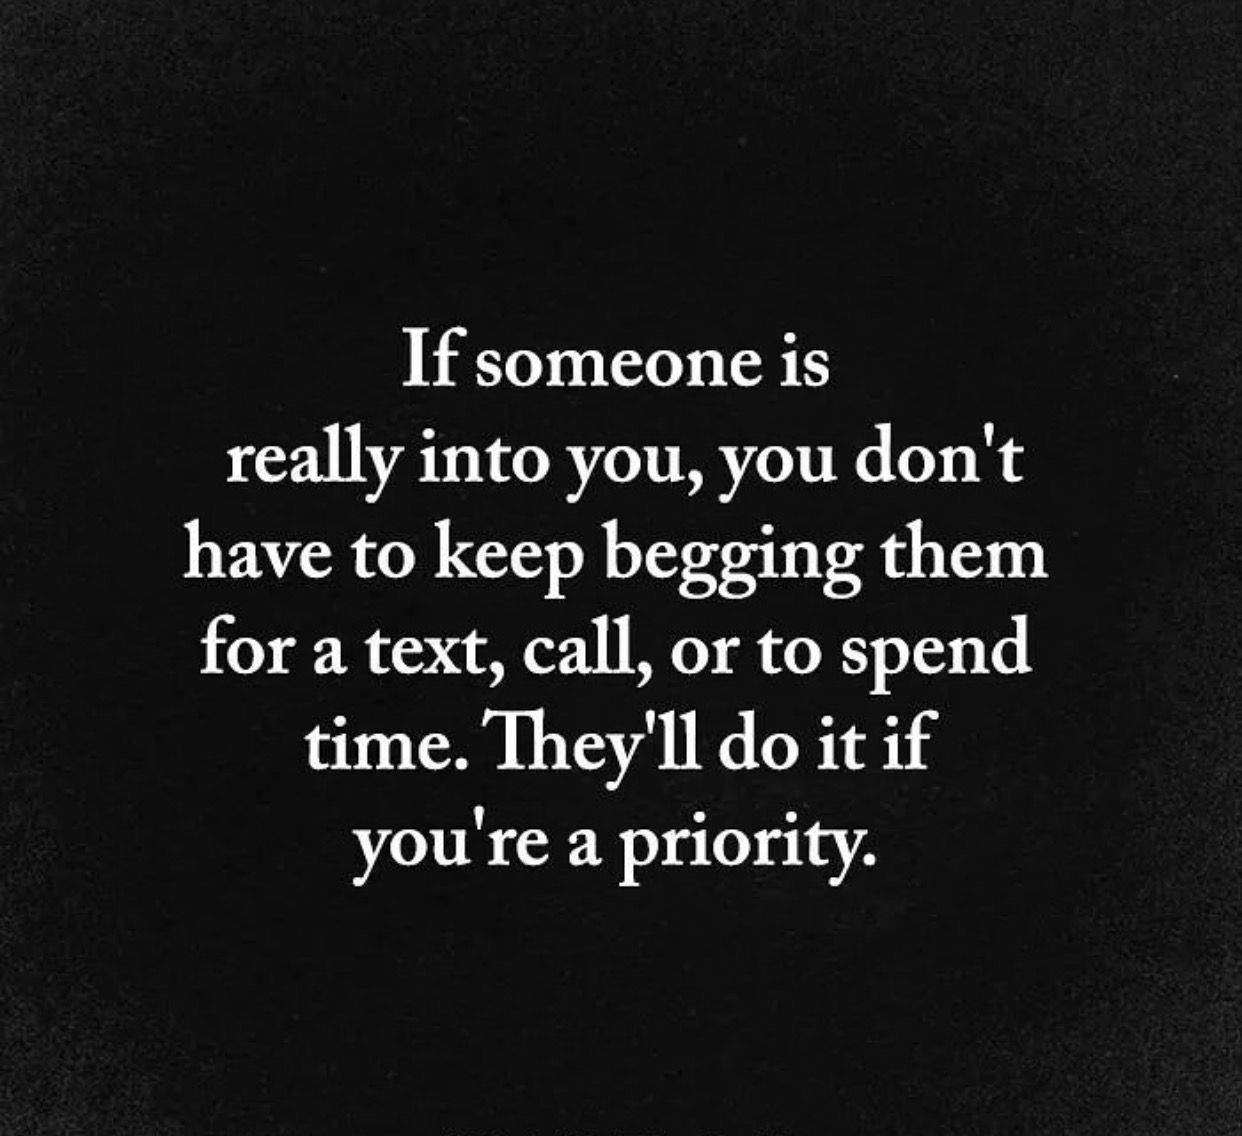 Pin by Kara on Quotes | Relationship quotes, Life advice ...